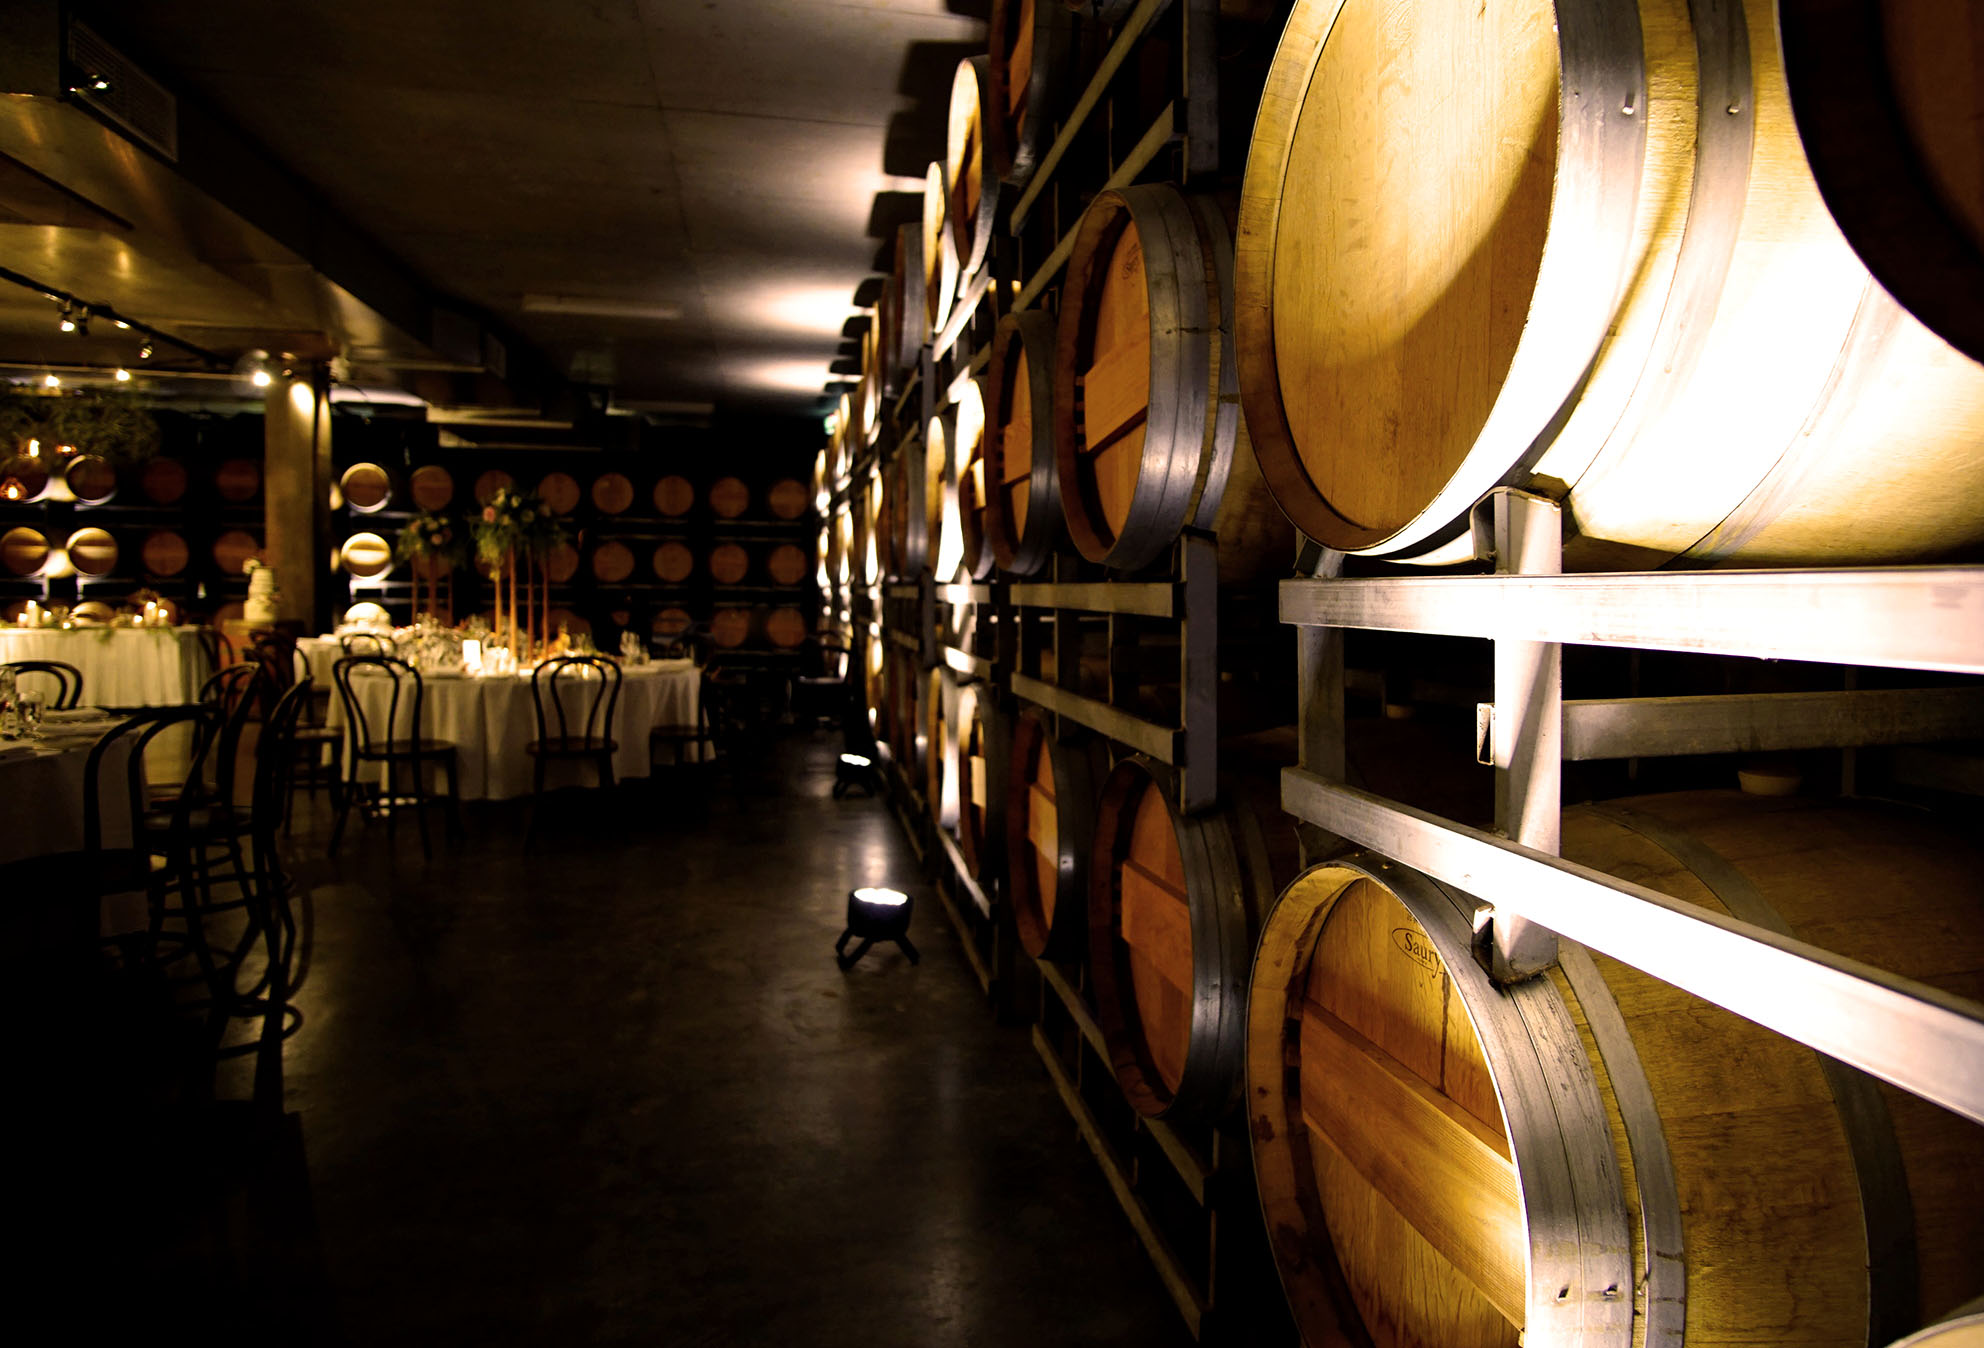 Sandalford Winery Barrel Wall Up-lighting